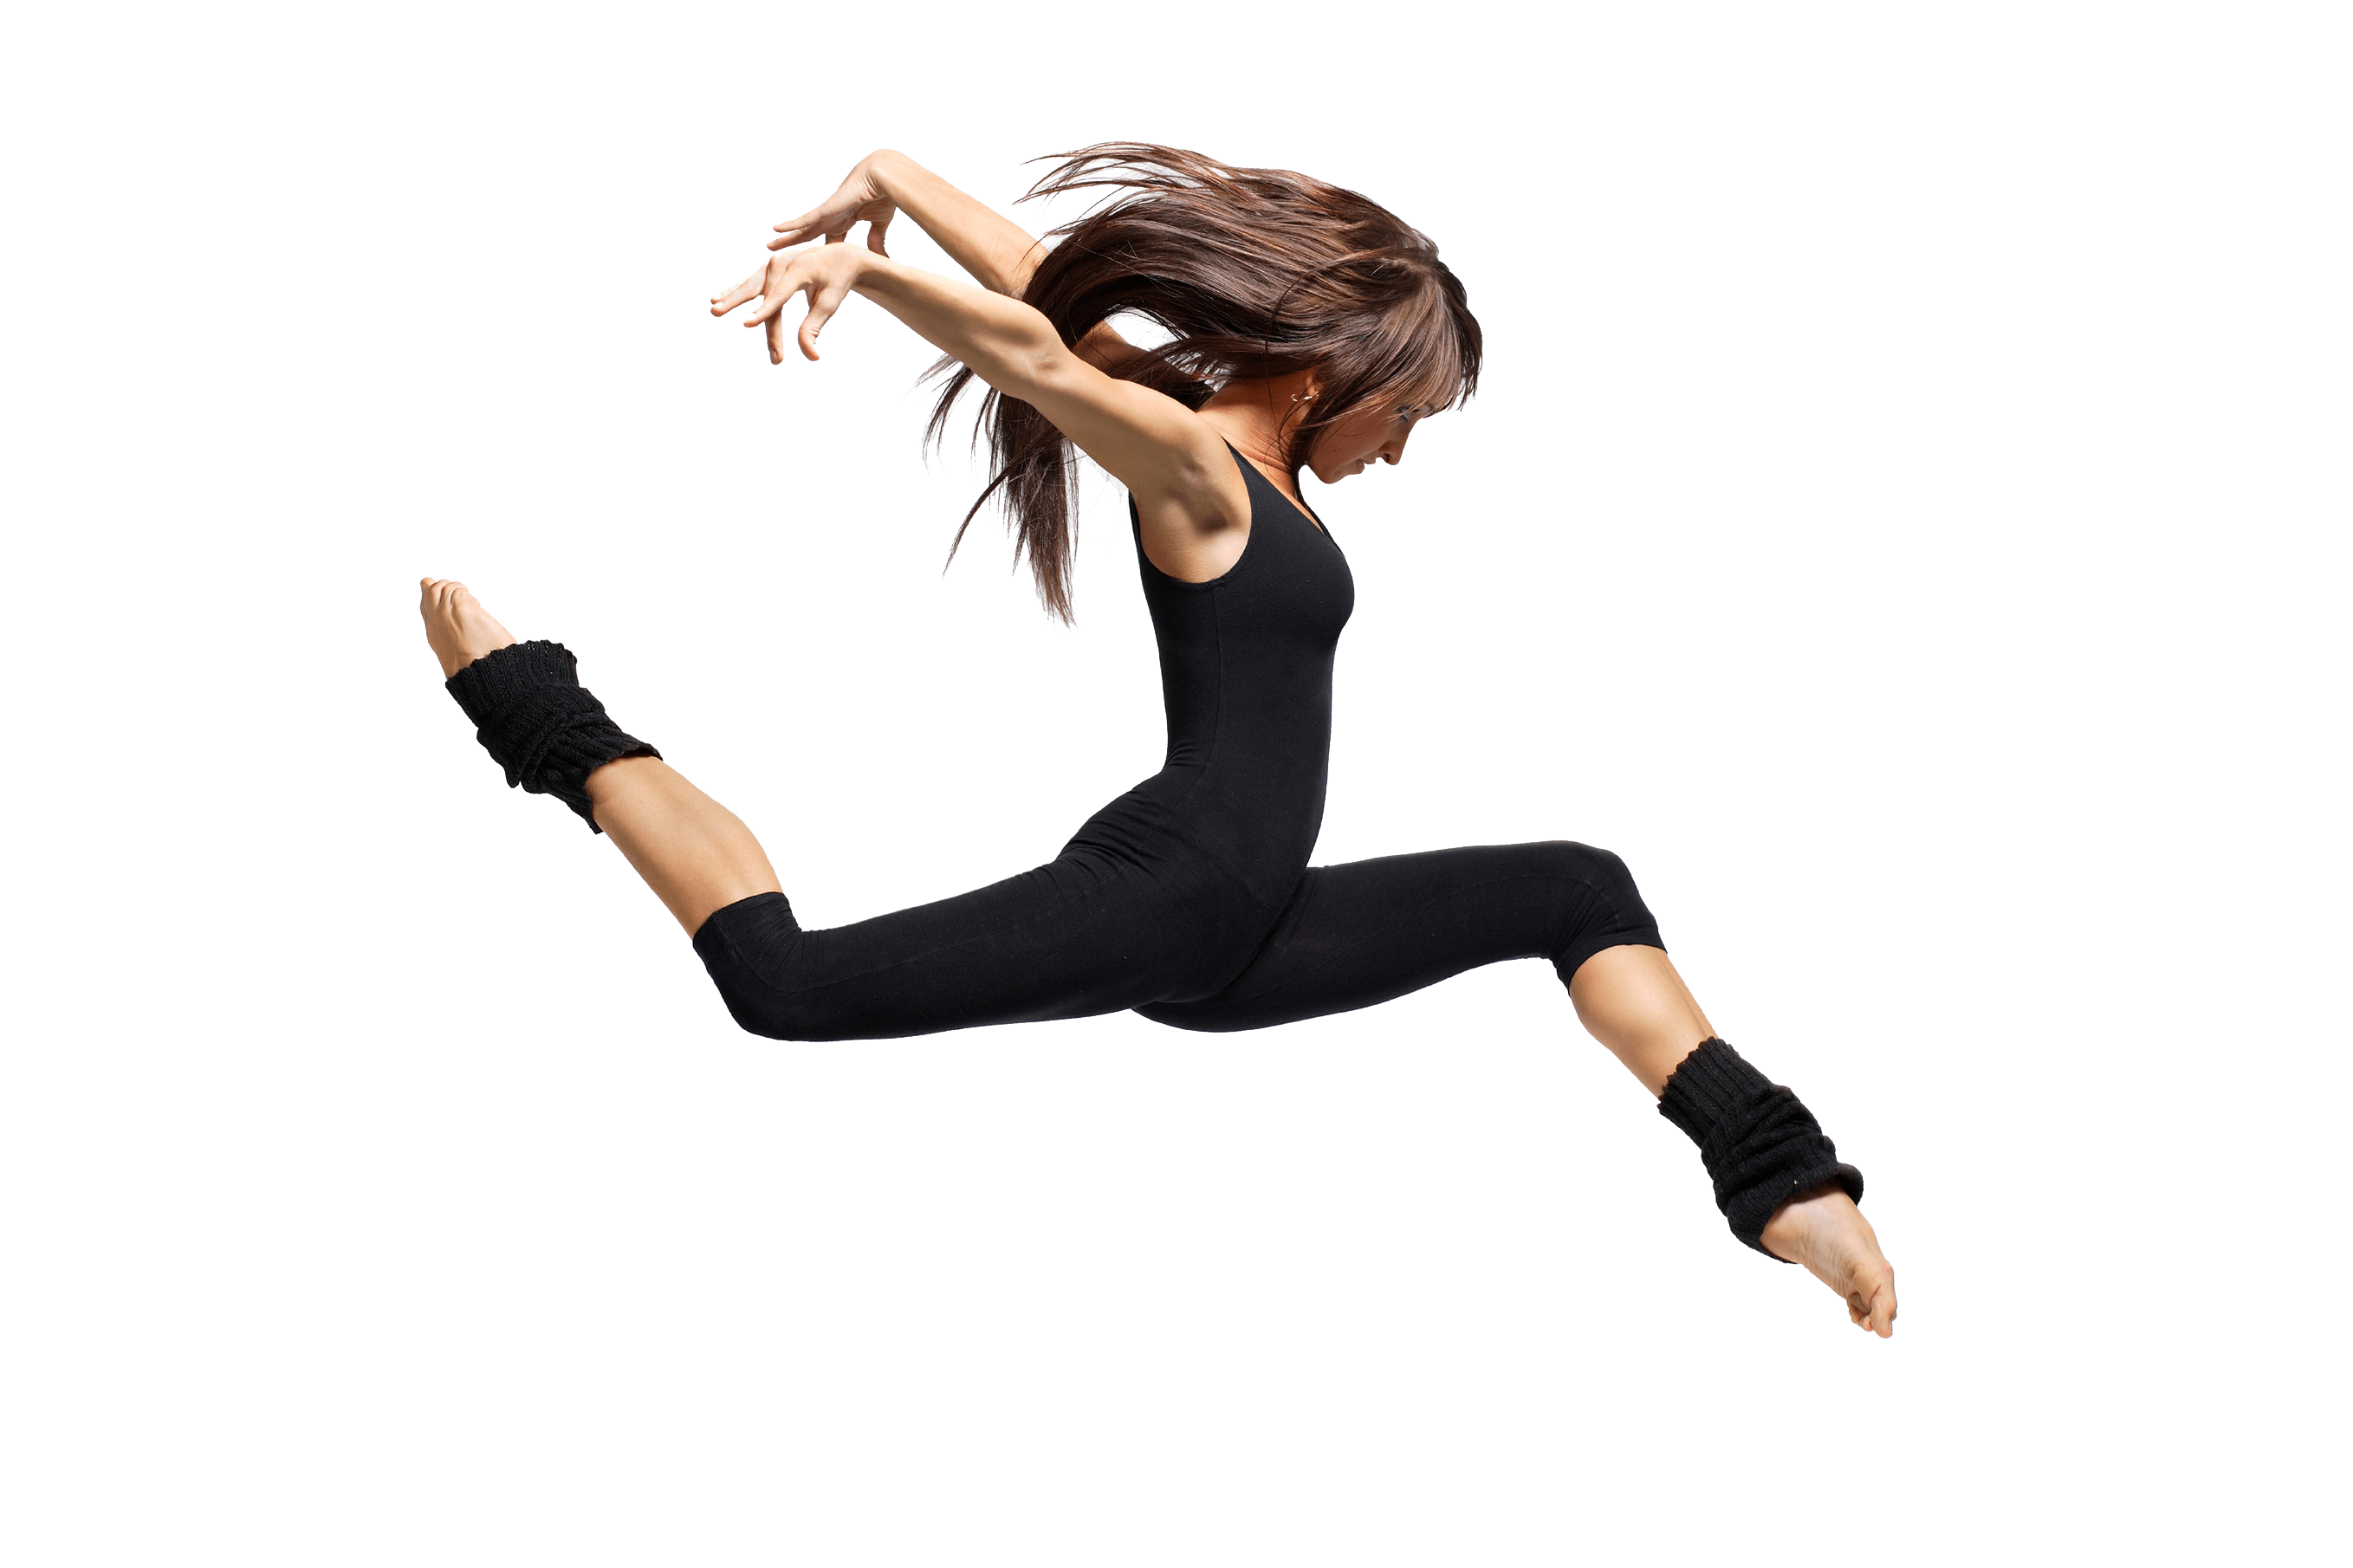 Dancer side jump png. Dance clipart transparent